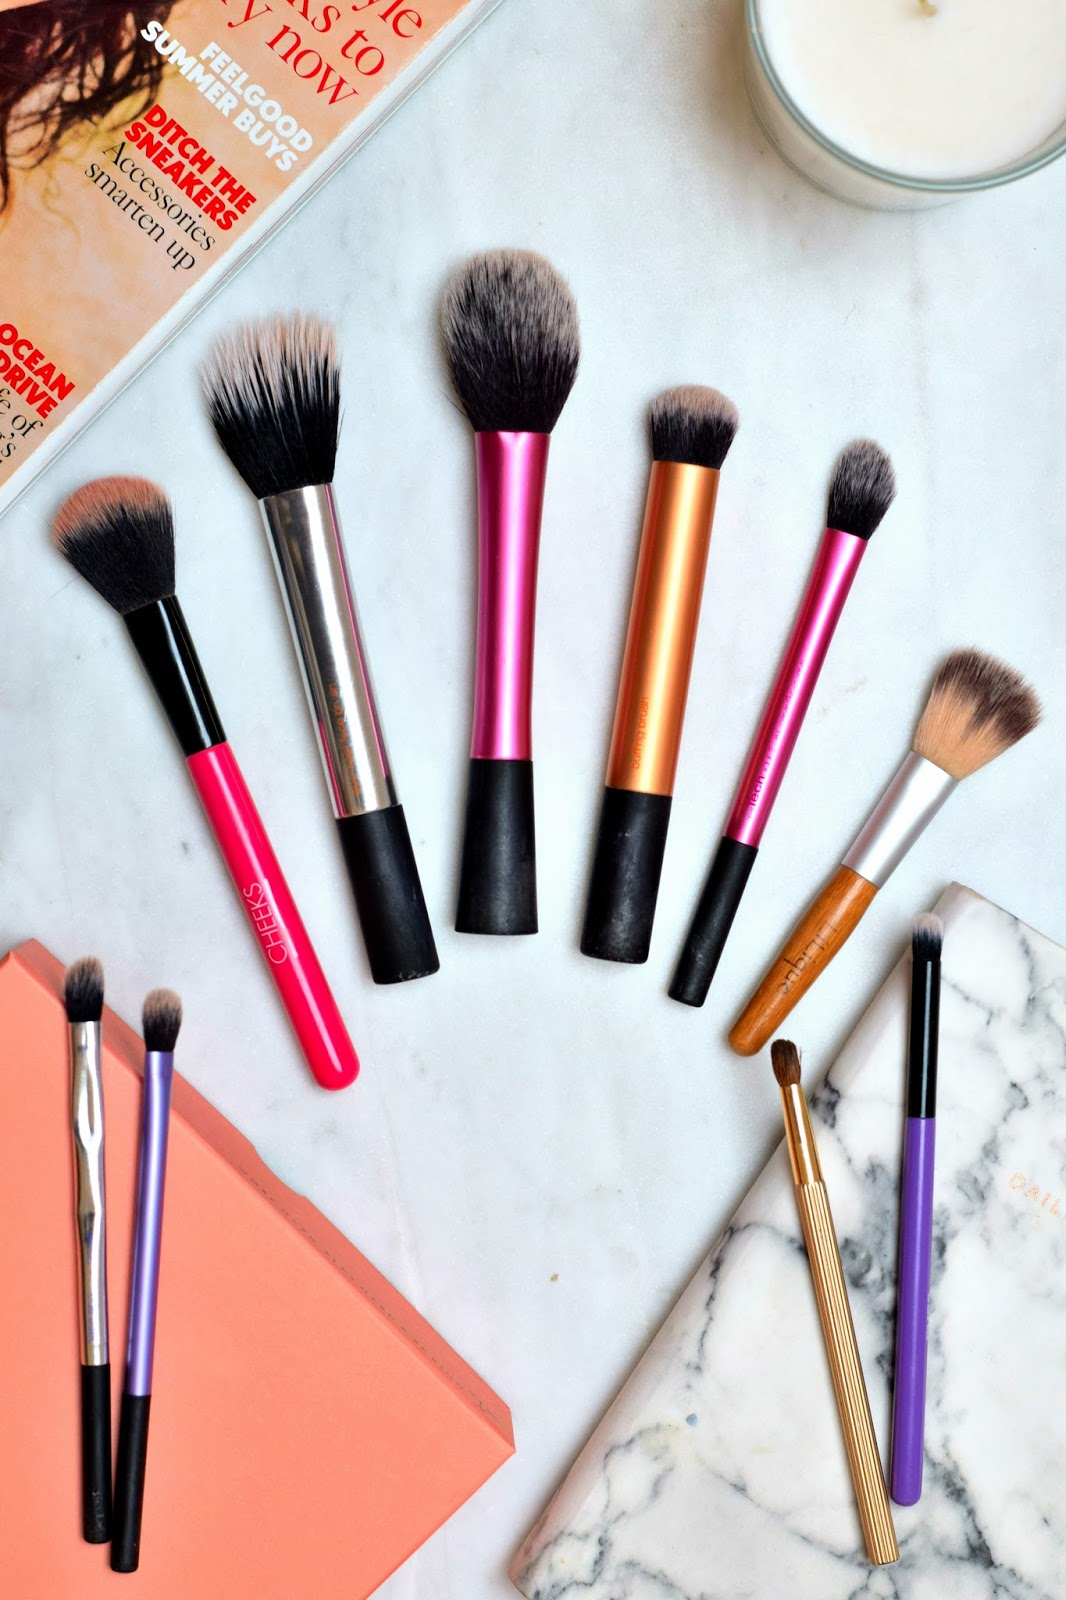 Life Of A Beauty Nerd - Favourite Make-Up Brushes